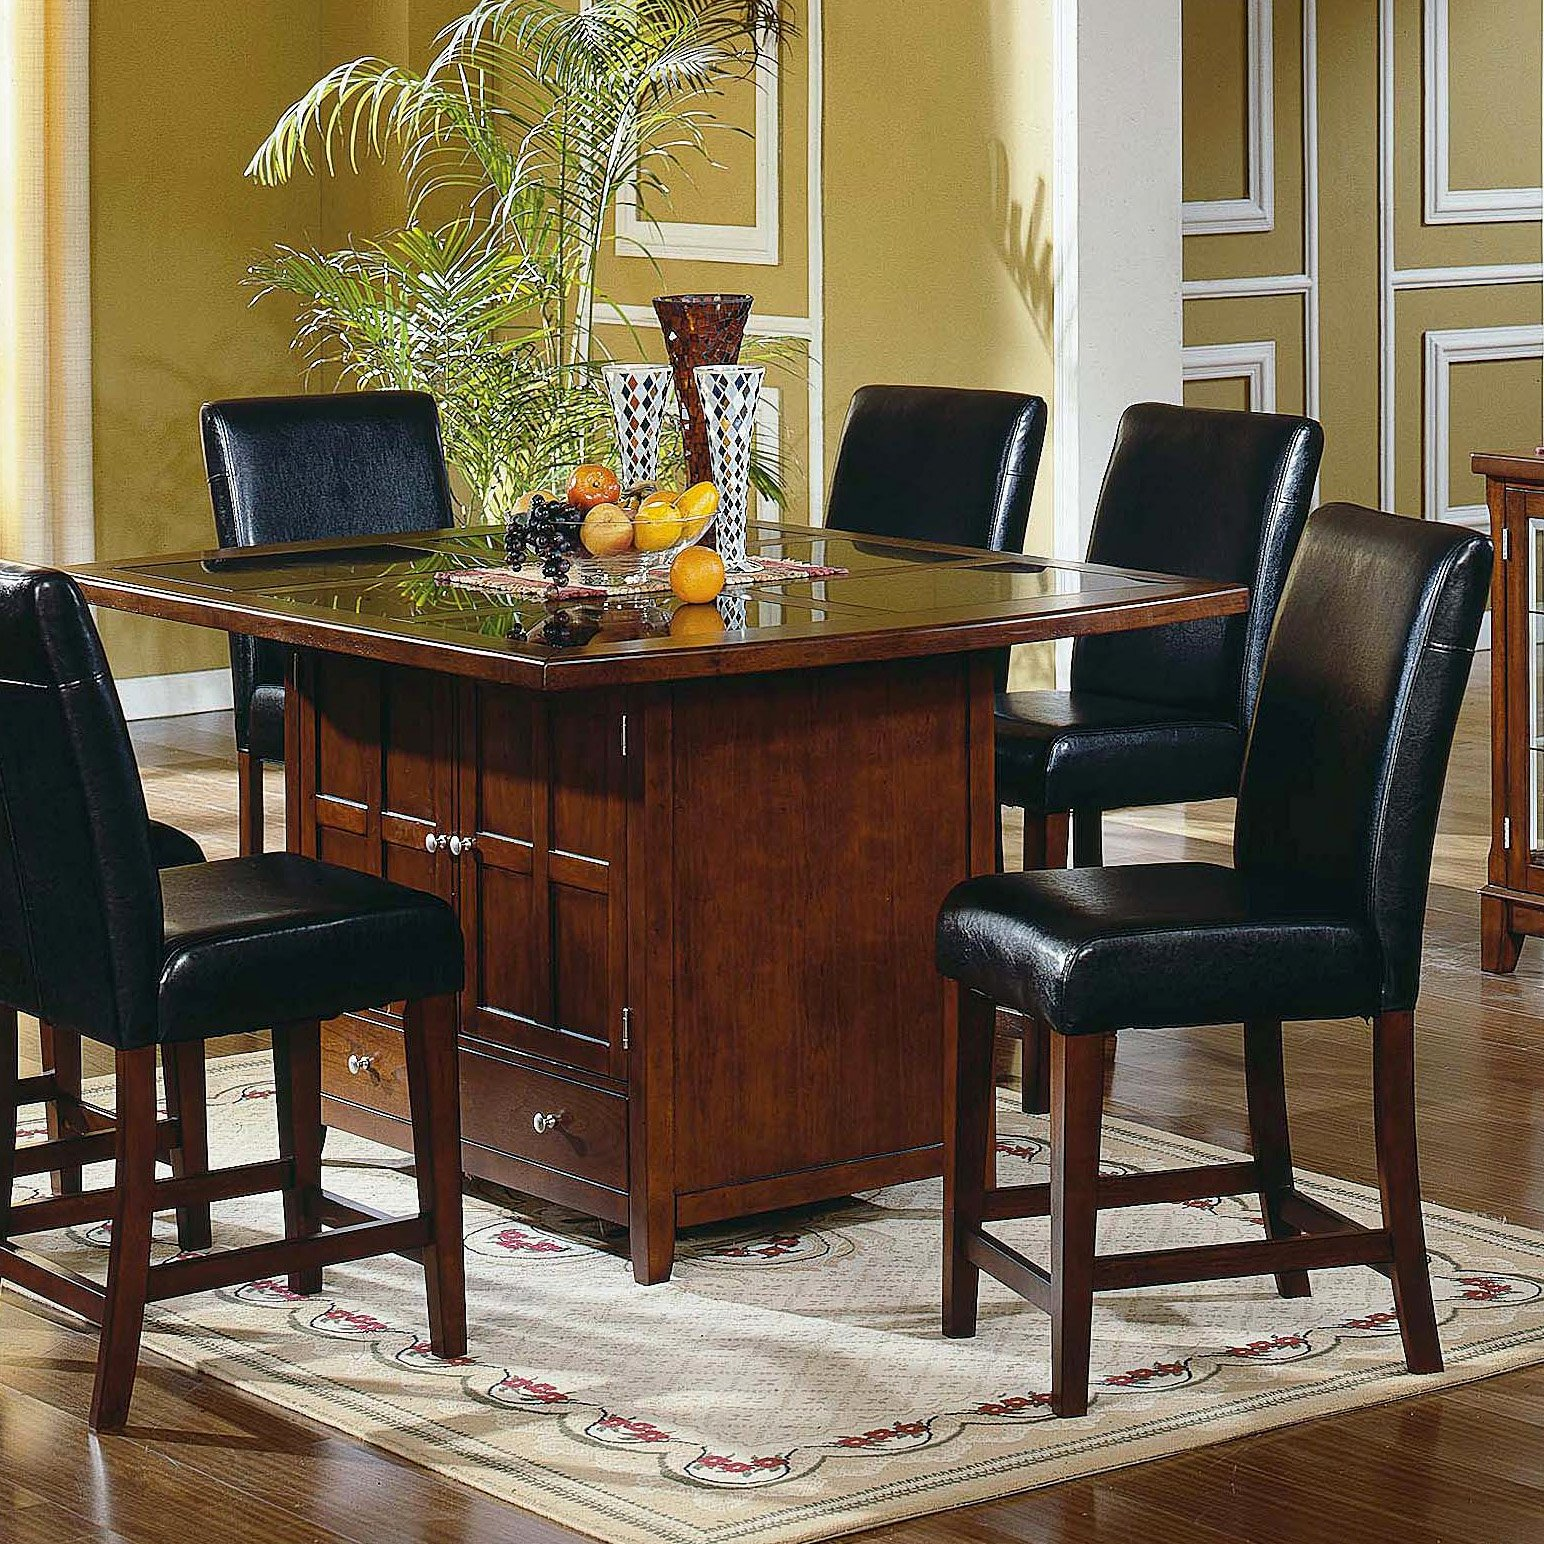 26 Big Small Dining Room Sets With Bench Seating: High Top Kitchen Table Sets